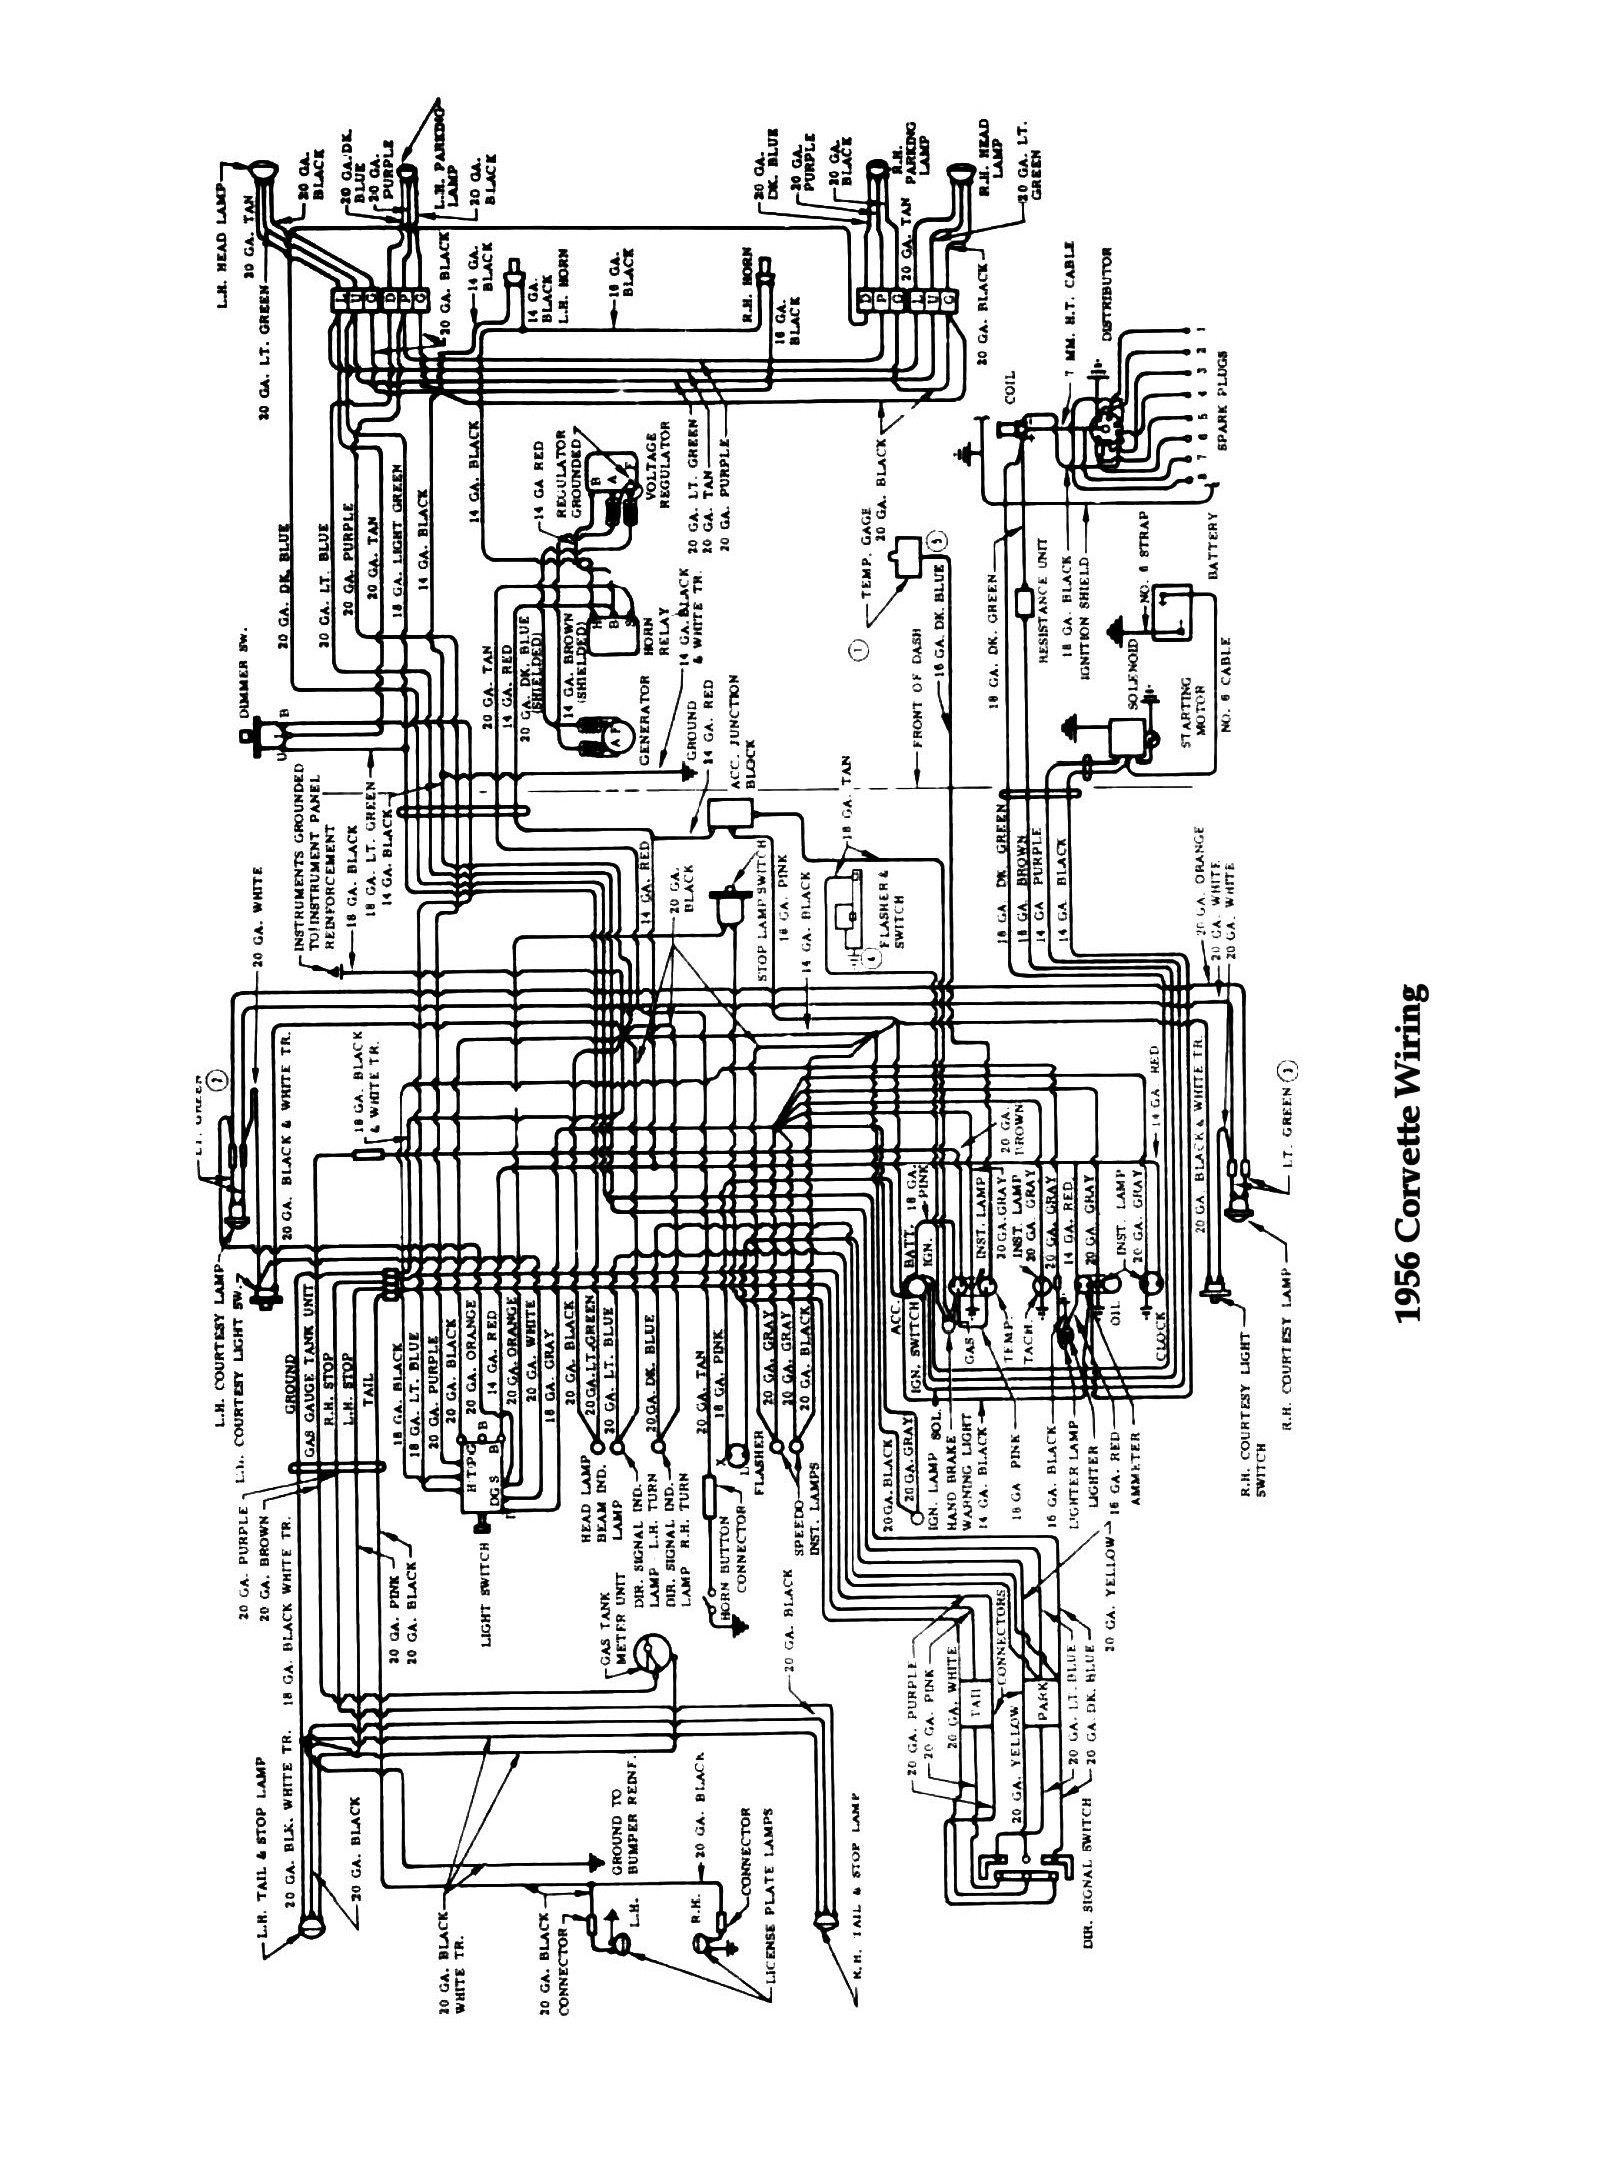 Chevy Corvette Wiring Schematic Free Download